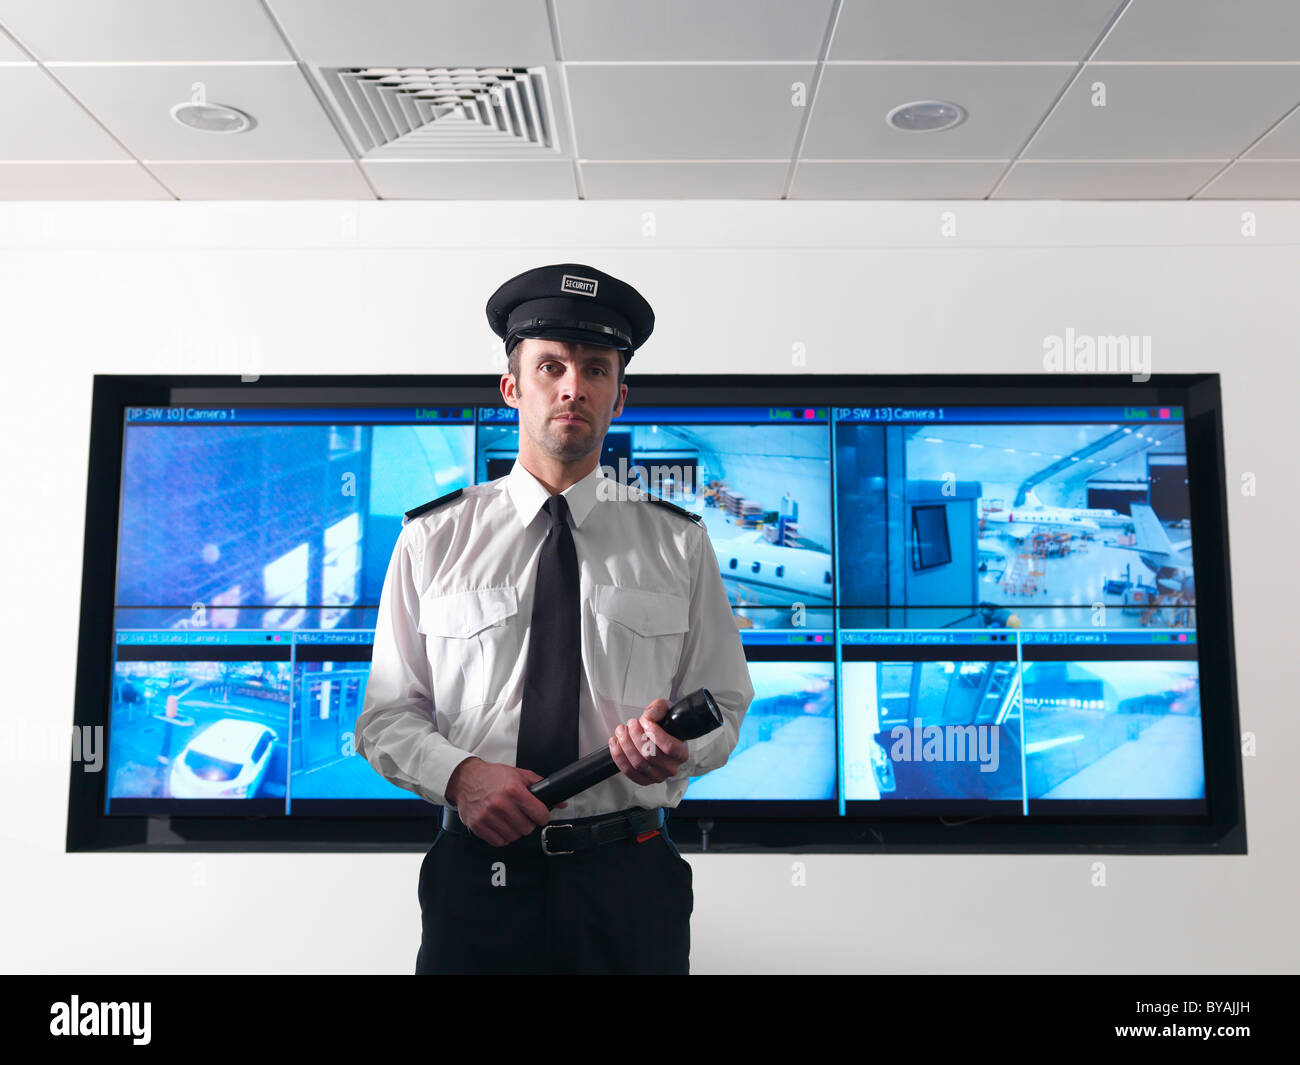 Security guard in control room - Stock Image